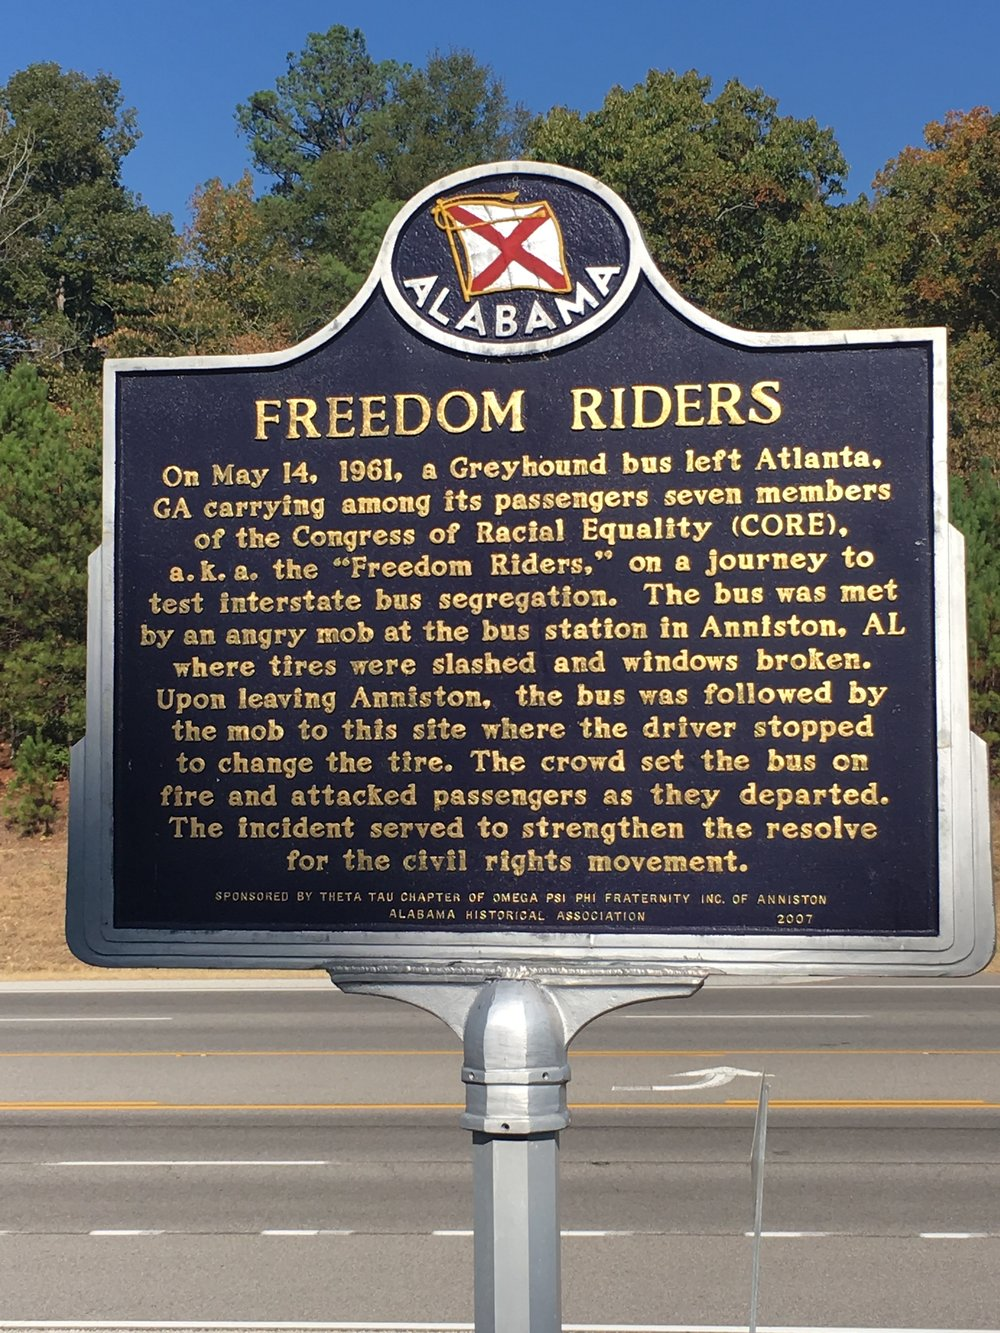 The historical marker at the bus burning site.